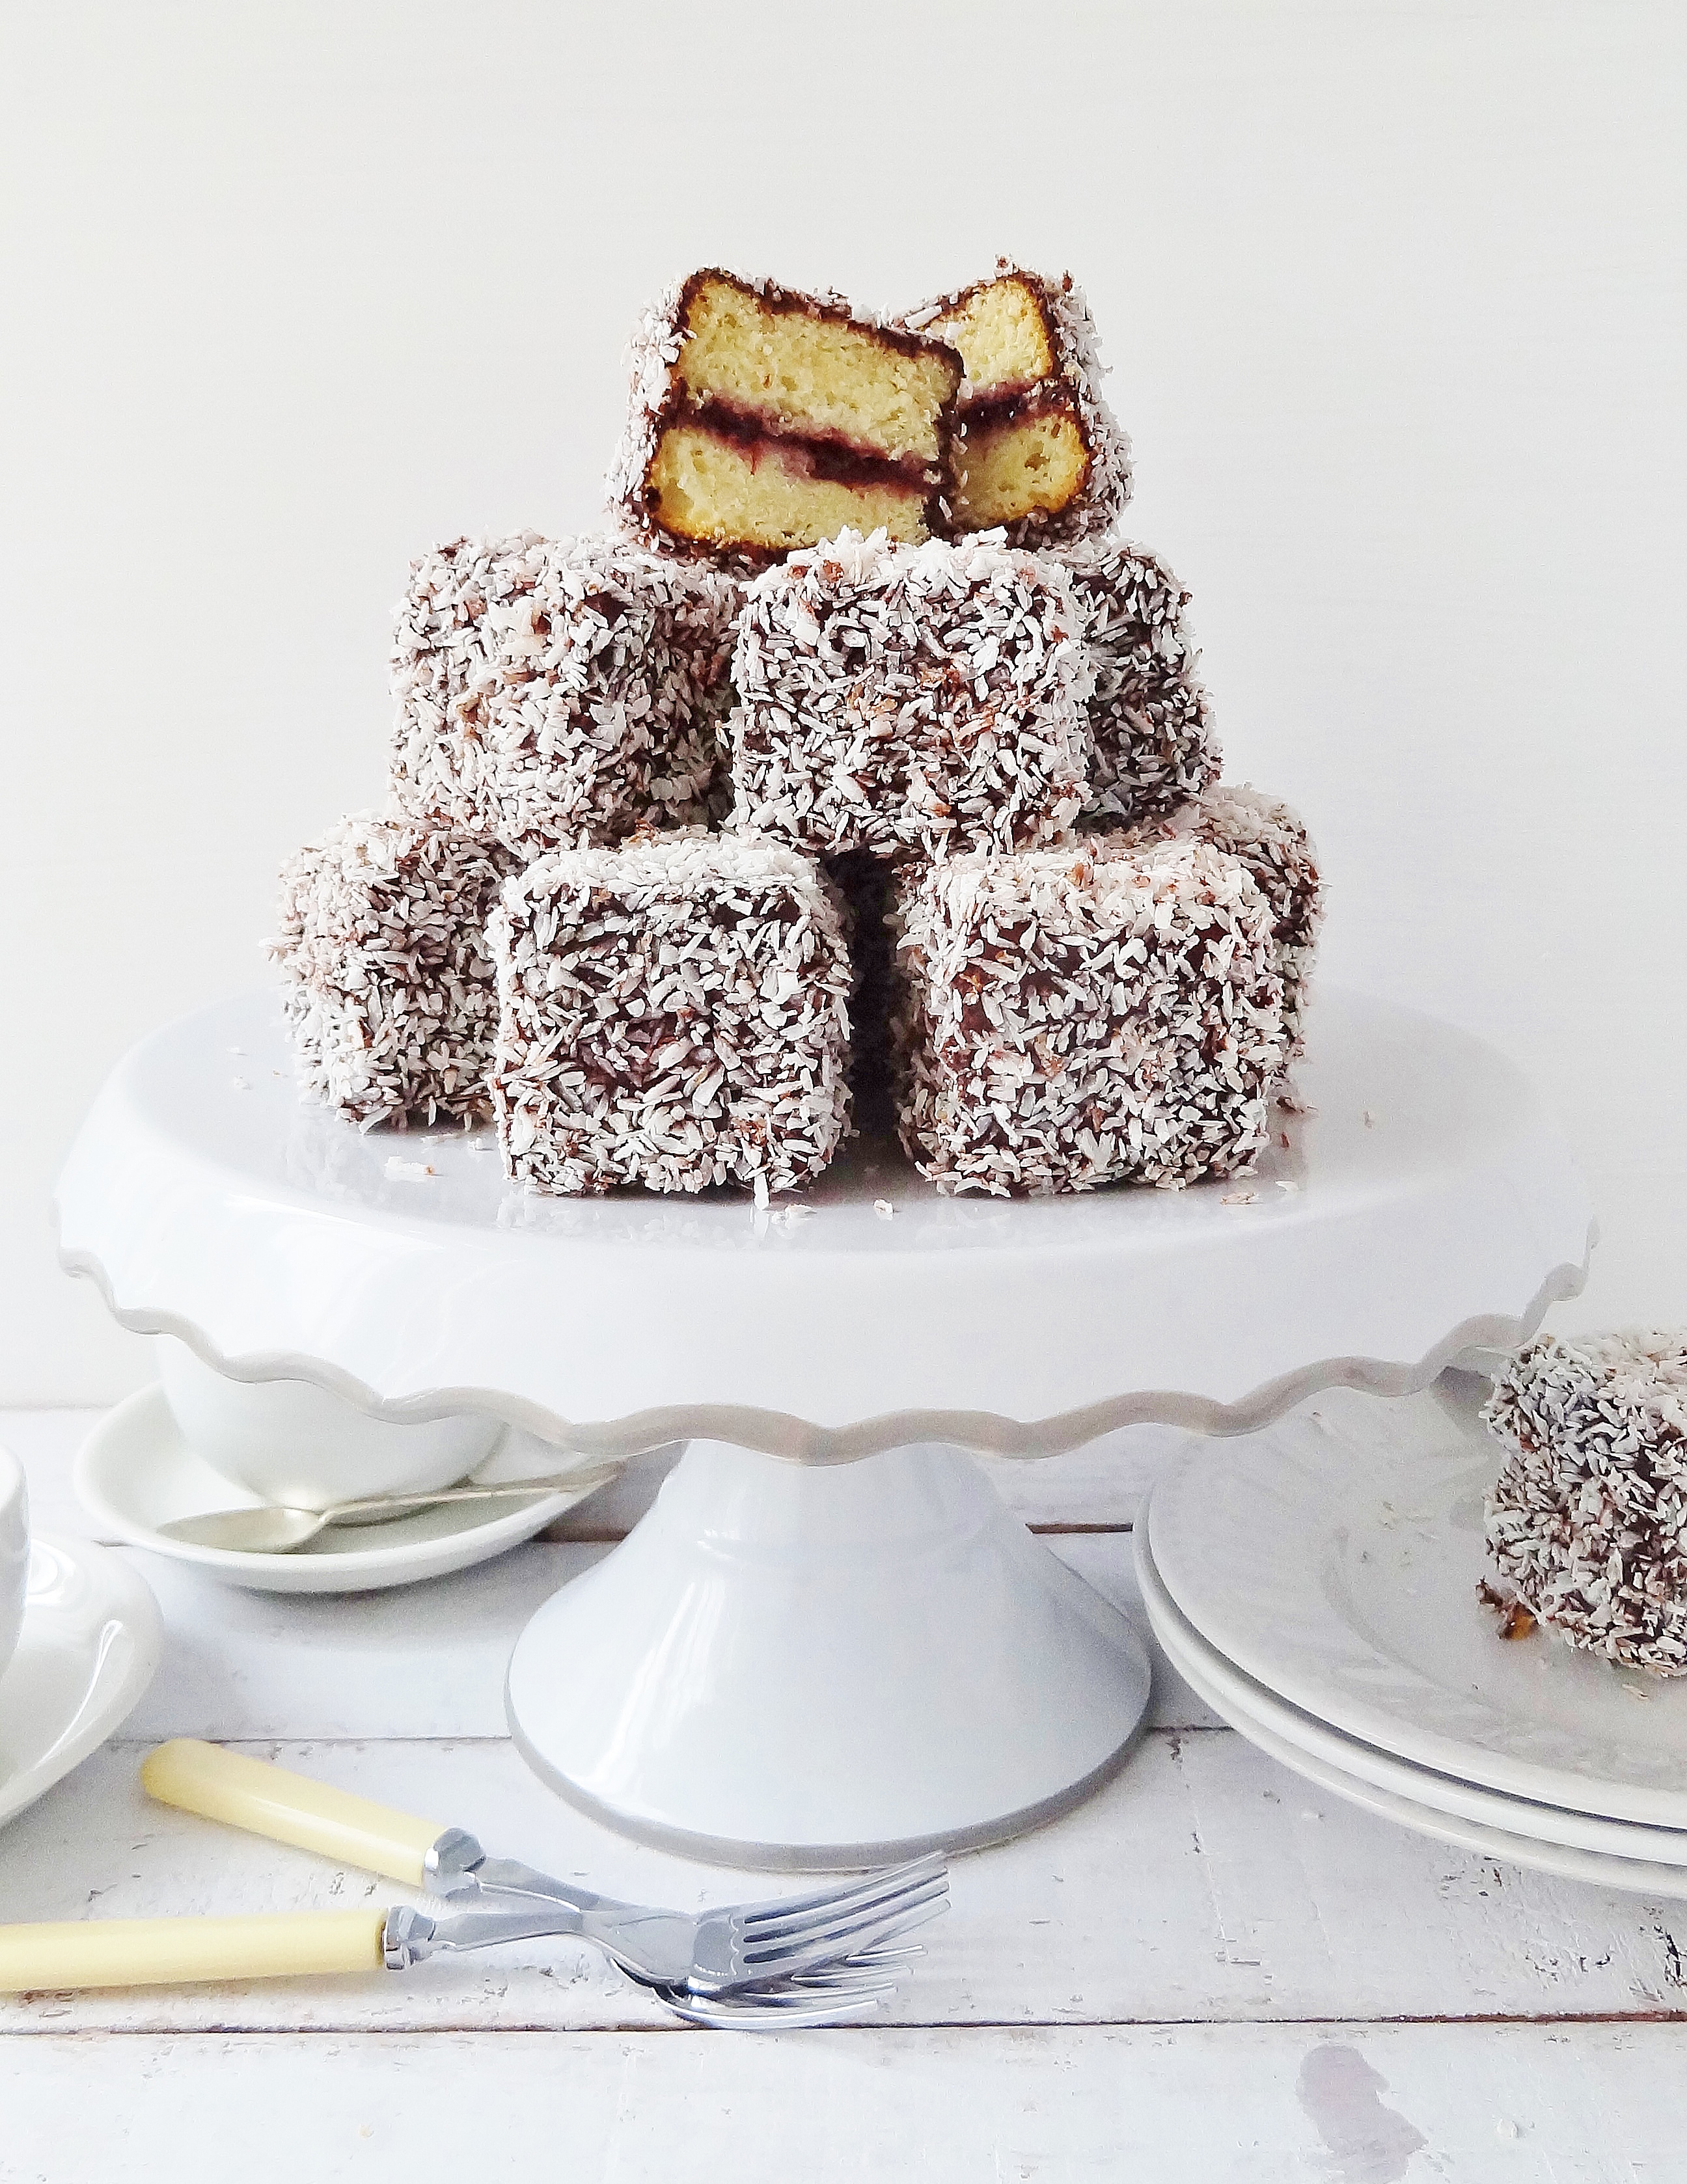 Jam-lamingtons-squares-of-vanilla-sponge-cake-filled-with-cherry-jam-coated-in-chocolate-and-coconut-Domestic-Gothess